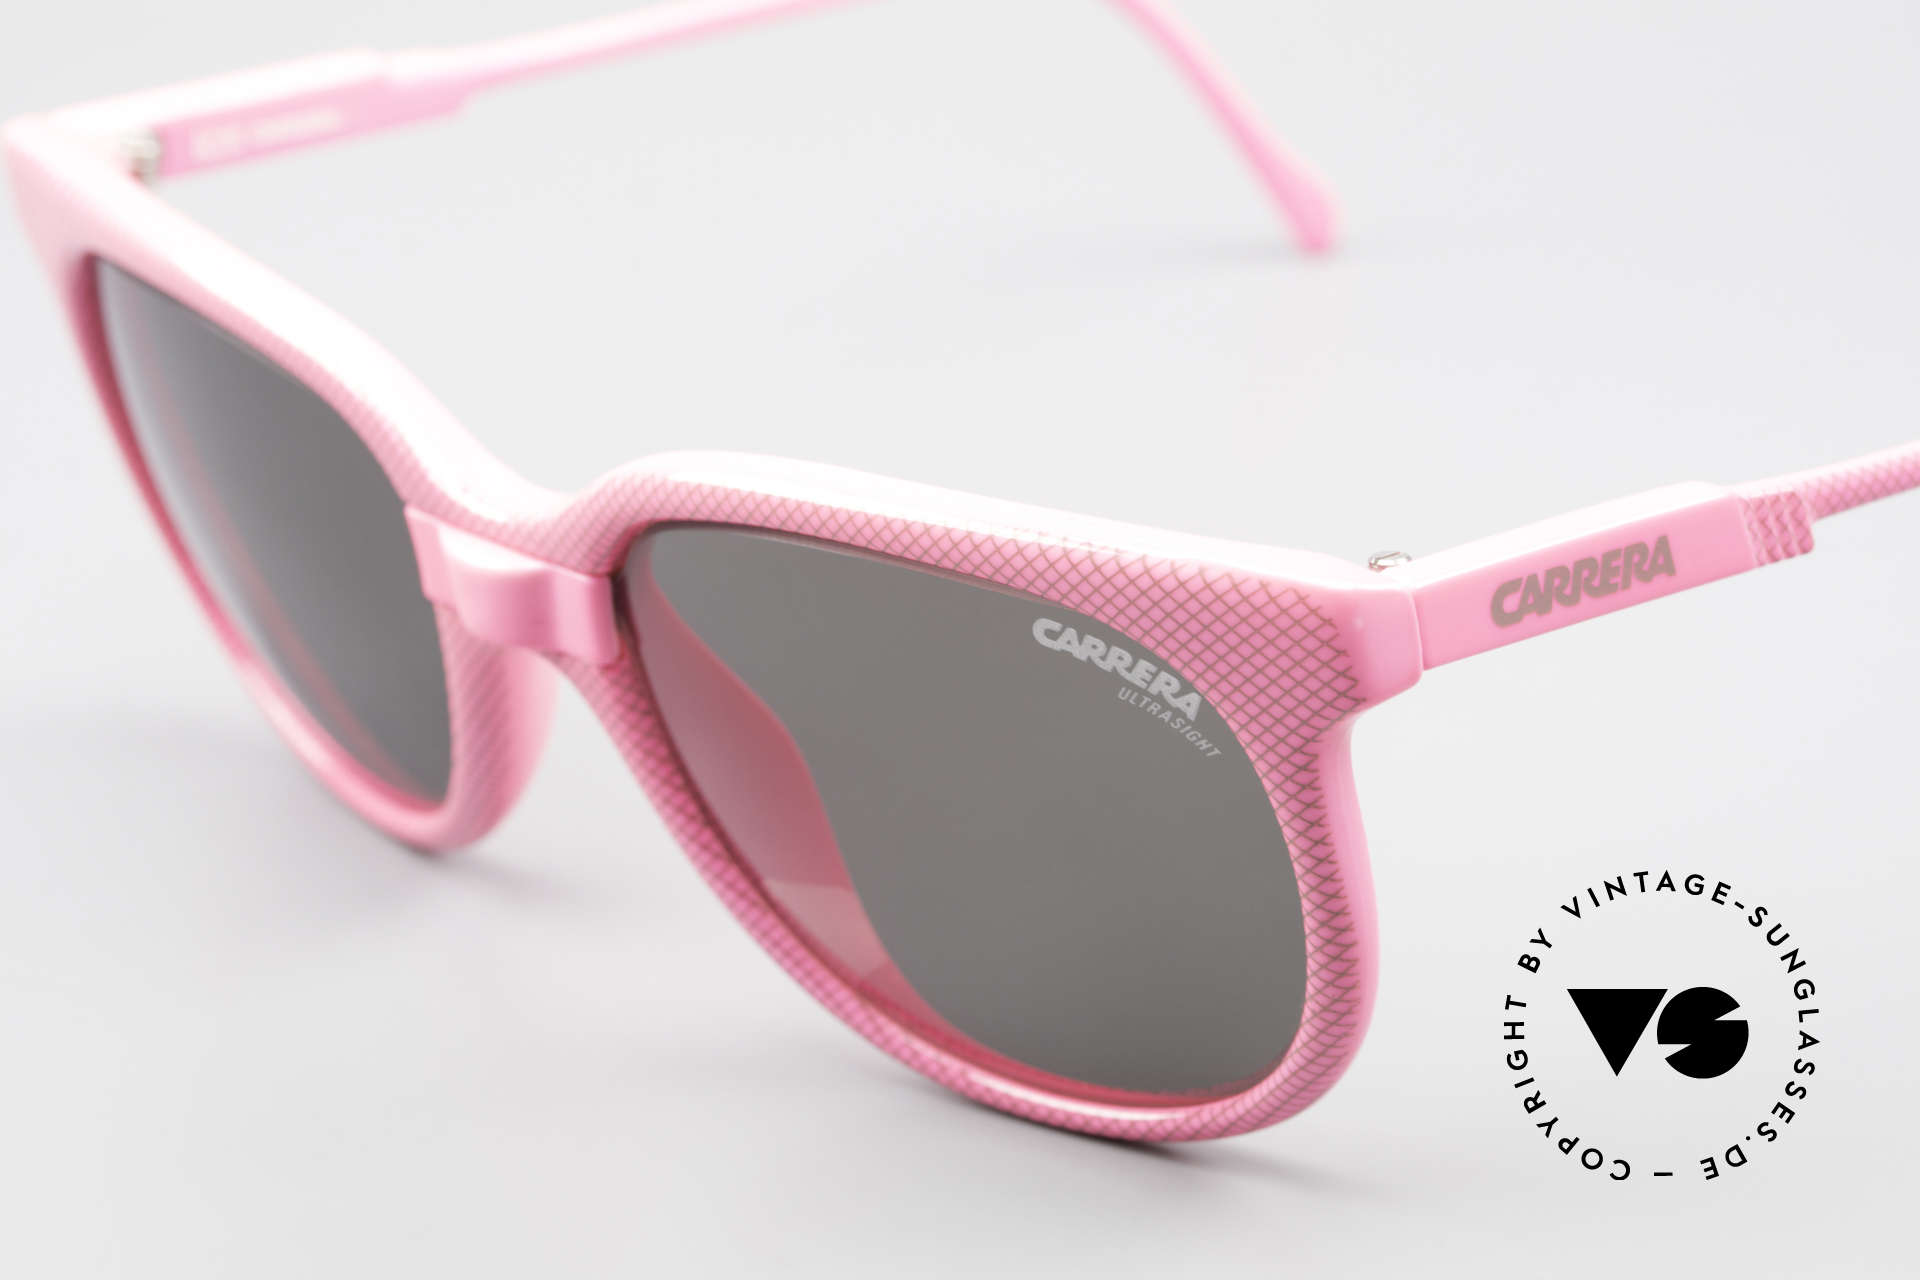 """Carrera 5426 Pink Ladies Sports Sunglasses, extraordinary frame pattern with """"lattice effect"""", Made for Women"""